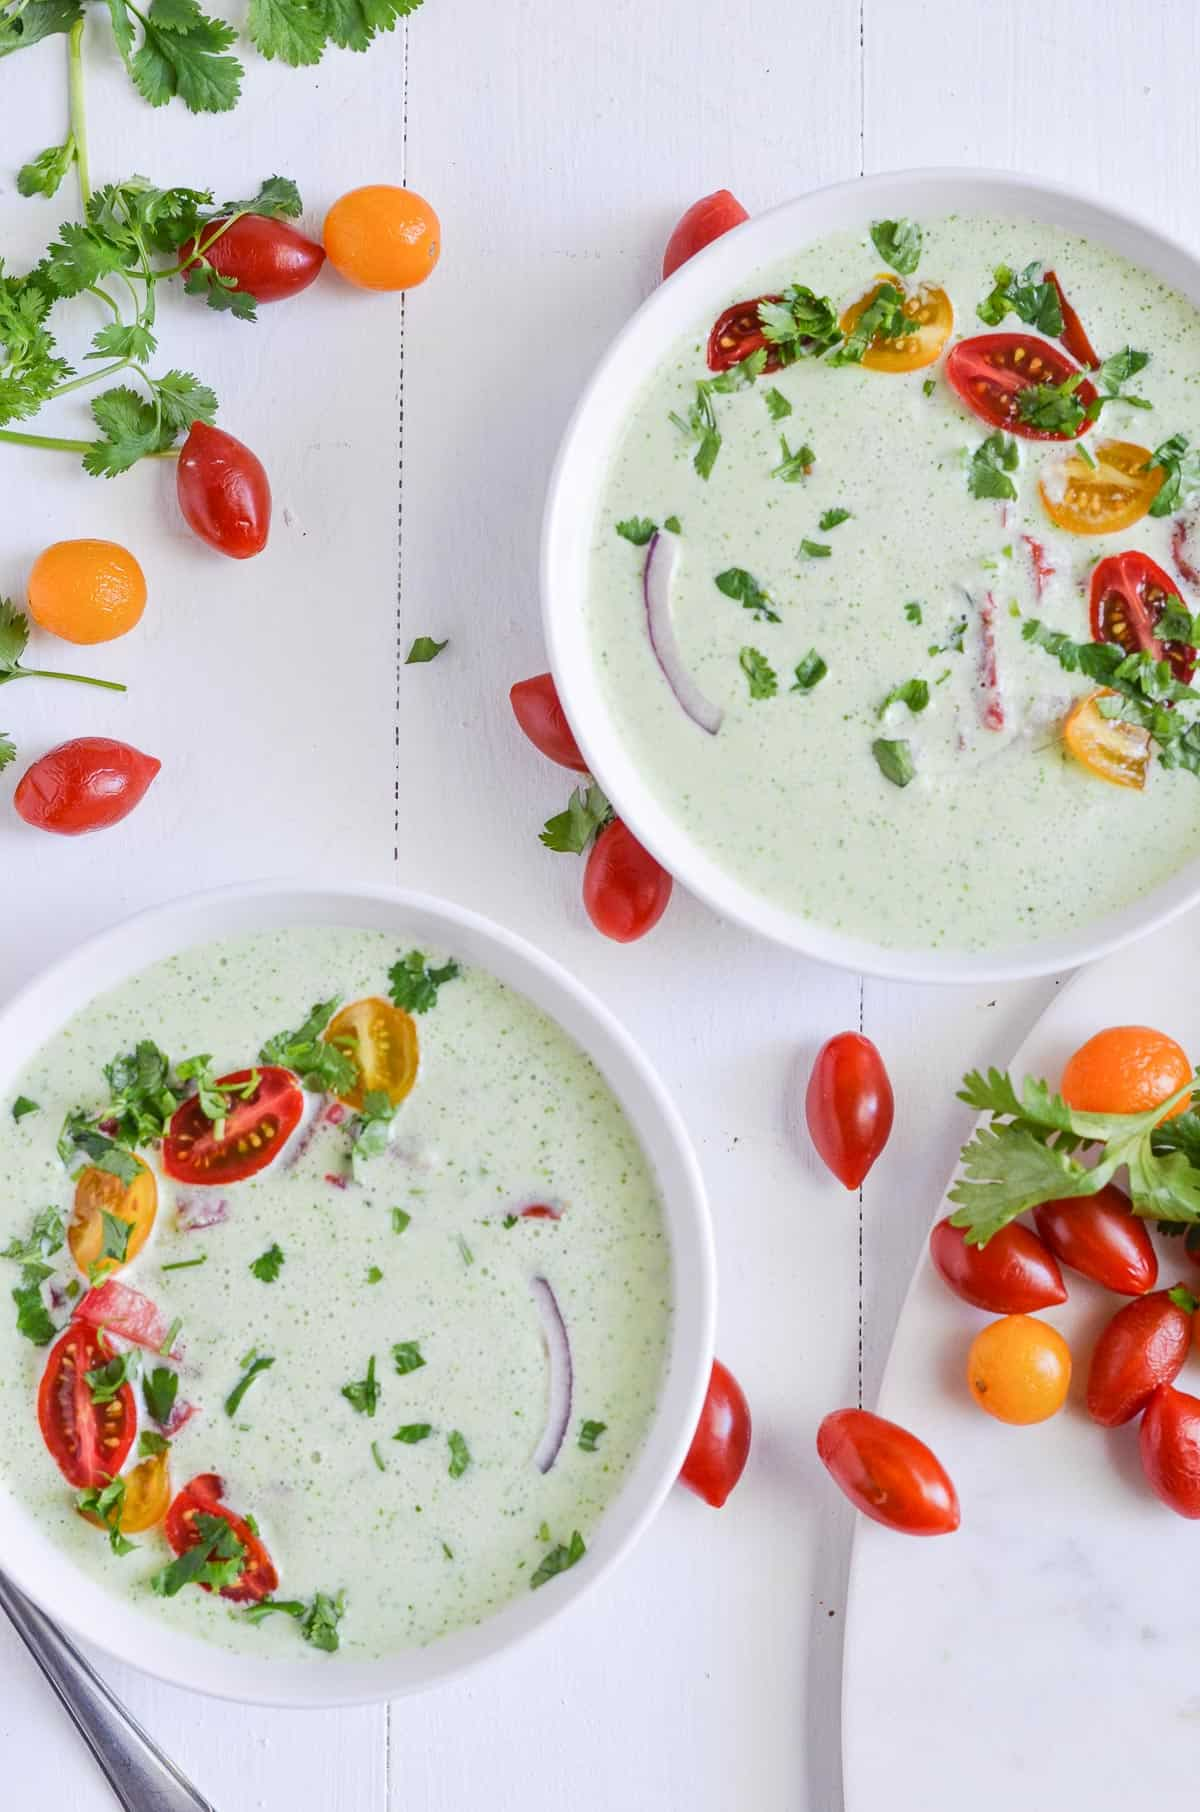 two bowls of chilled cucumber soup, garnished with cilantro & cherry tomatoes.